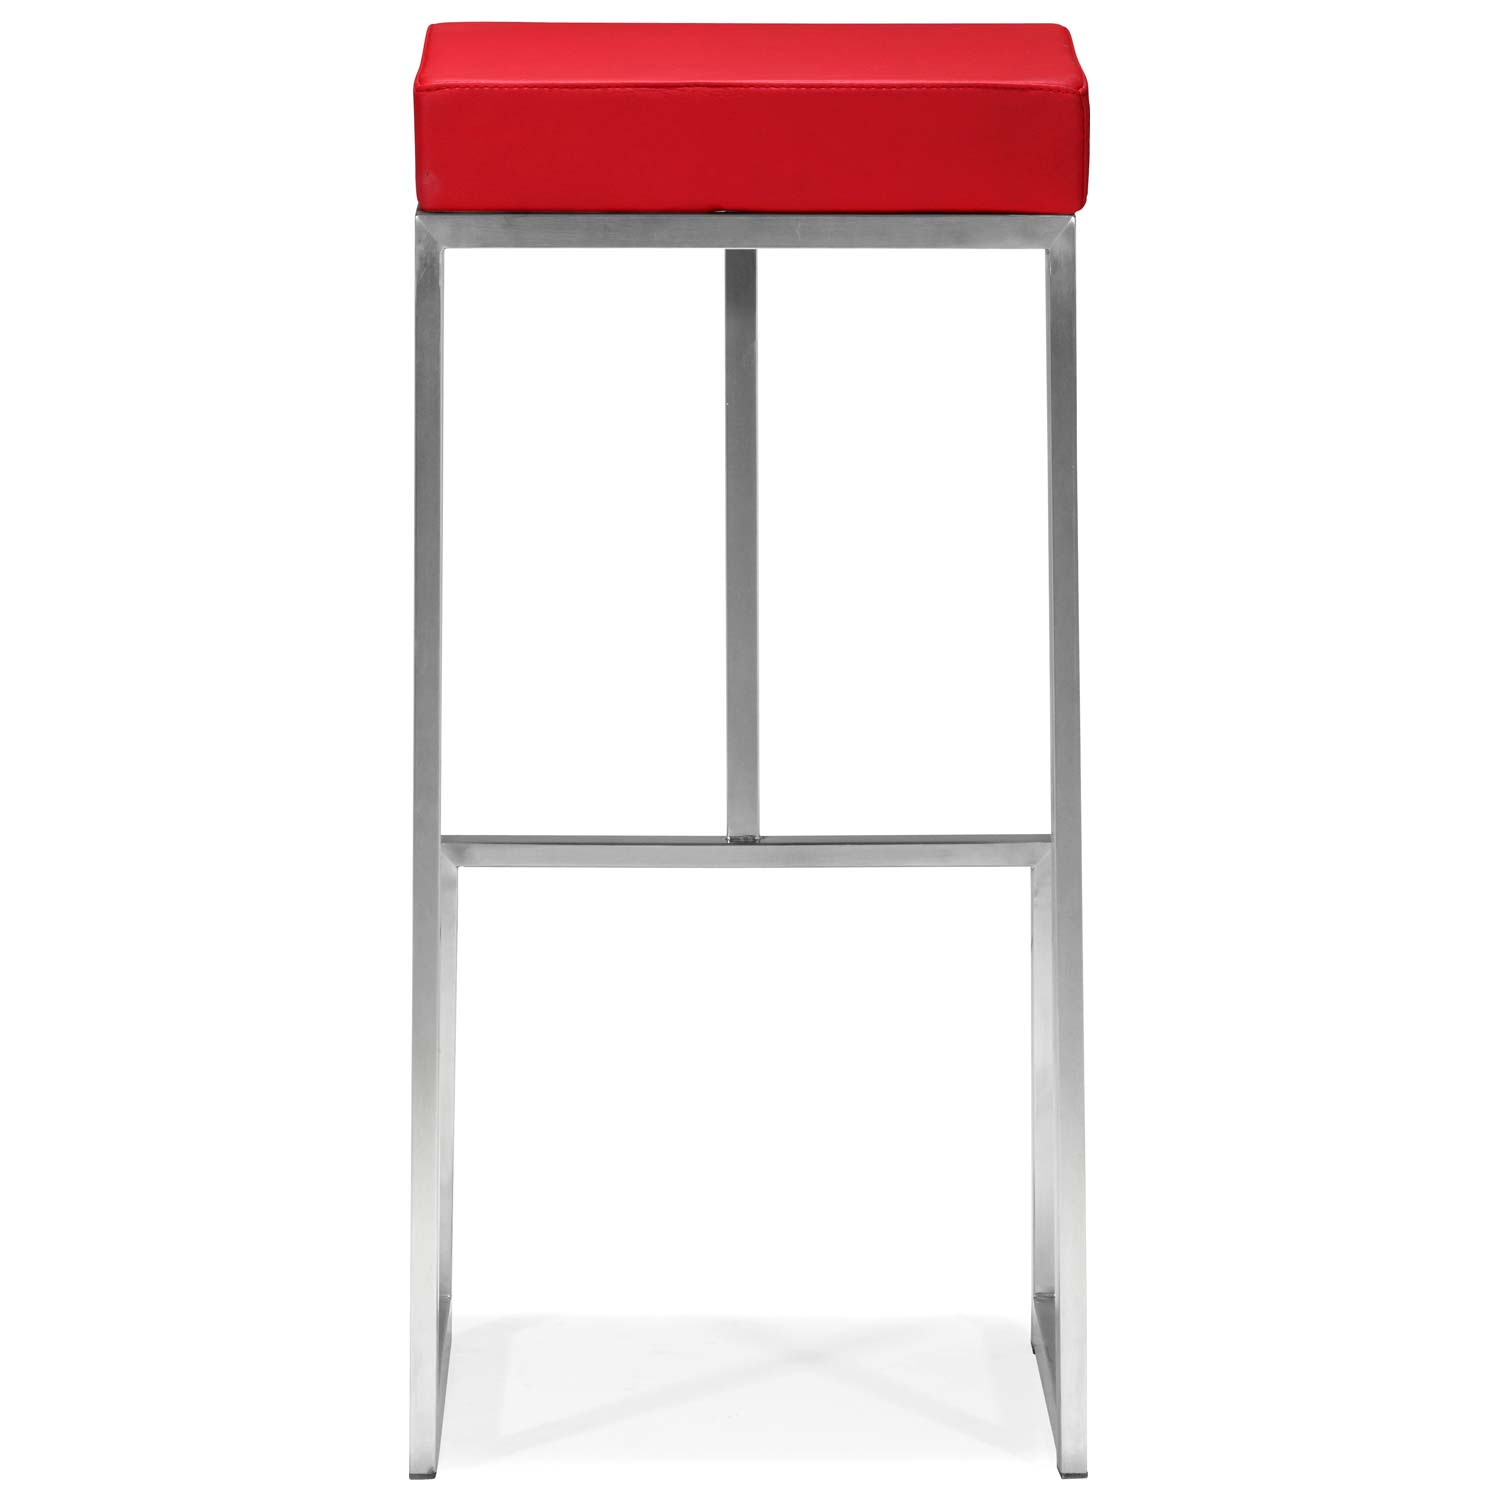 "Darwen 30"" Backless Bar Stool - Stainless Steel, Red - ZM-300047"